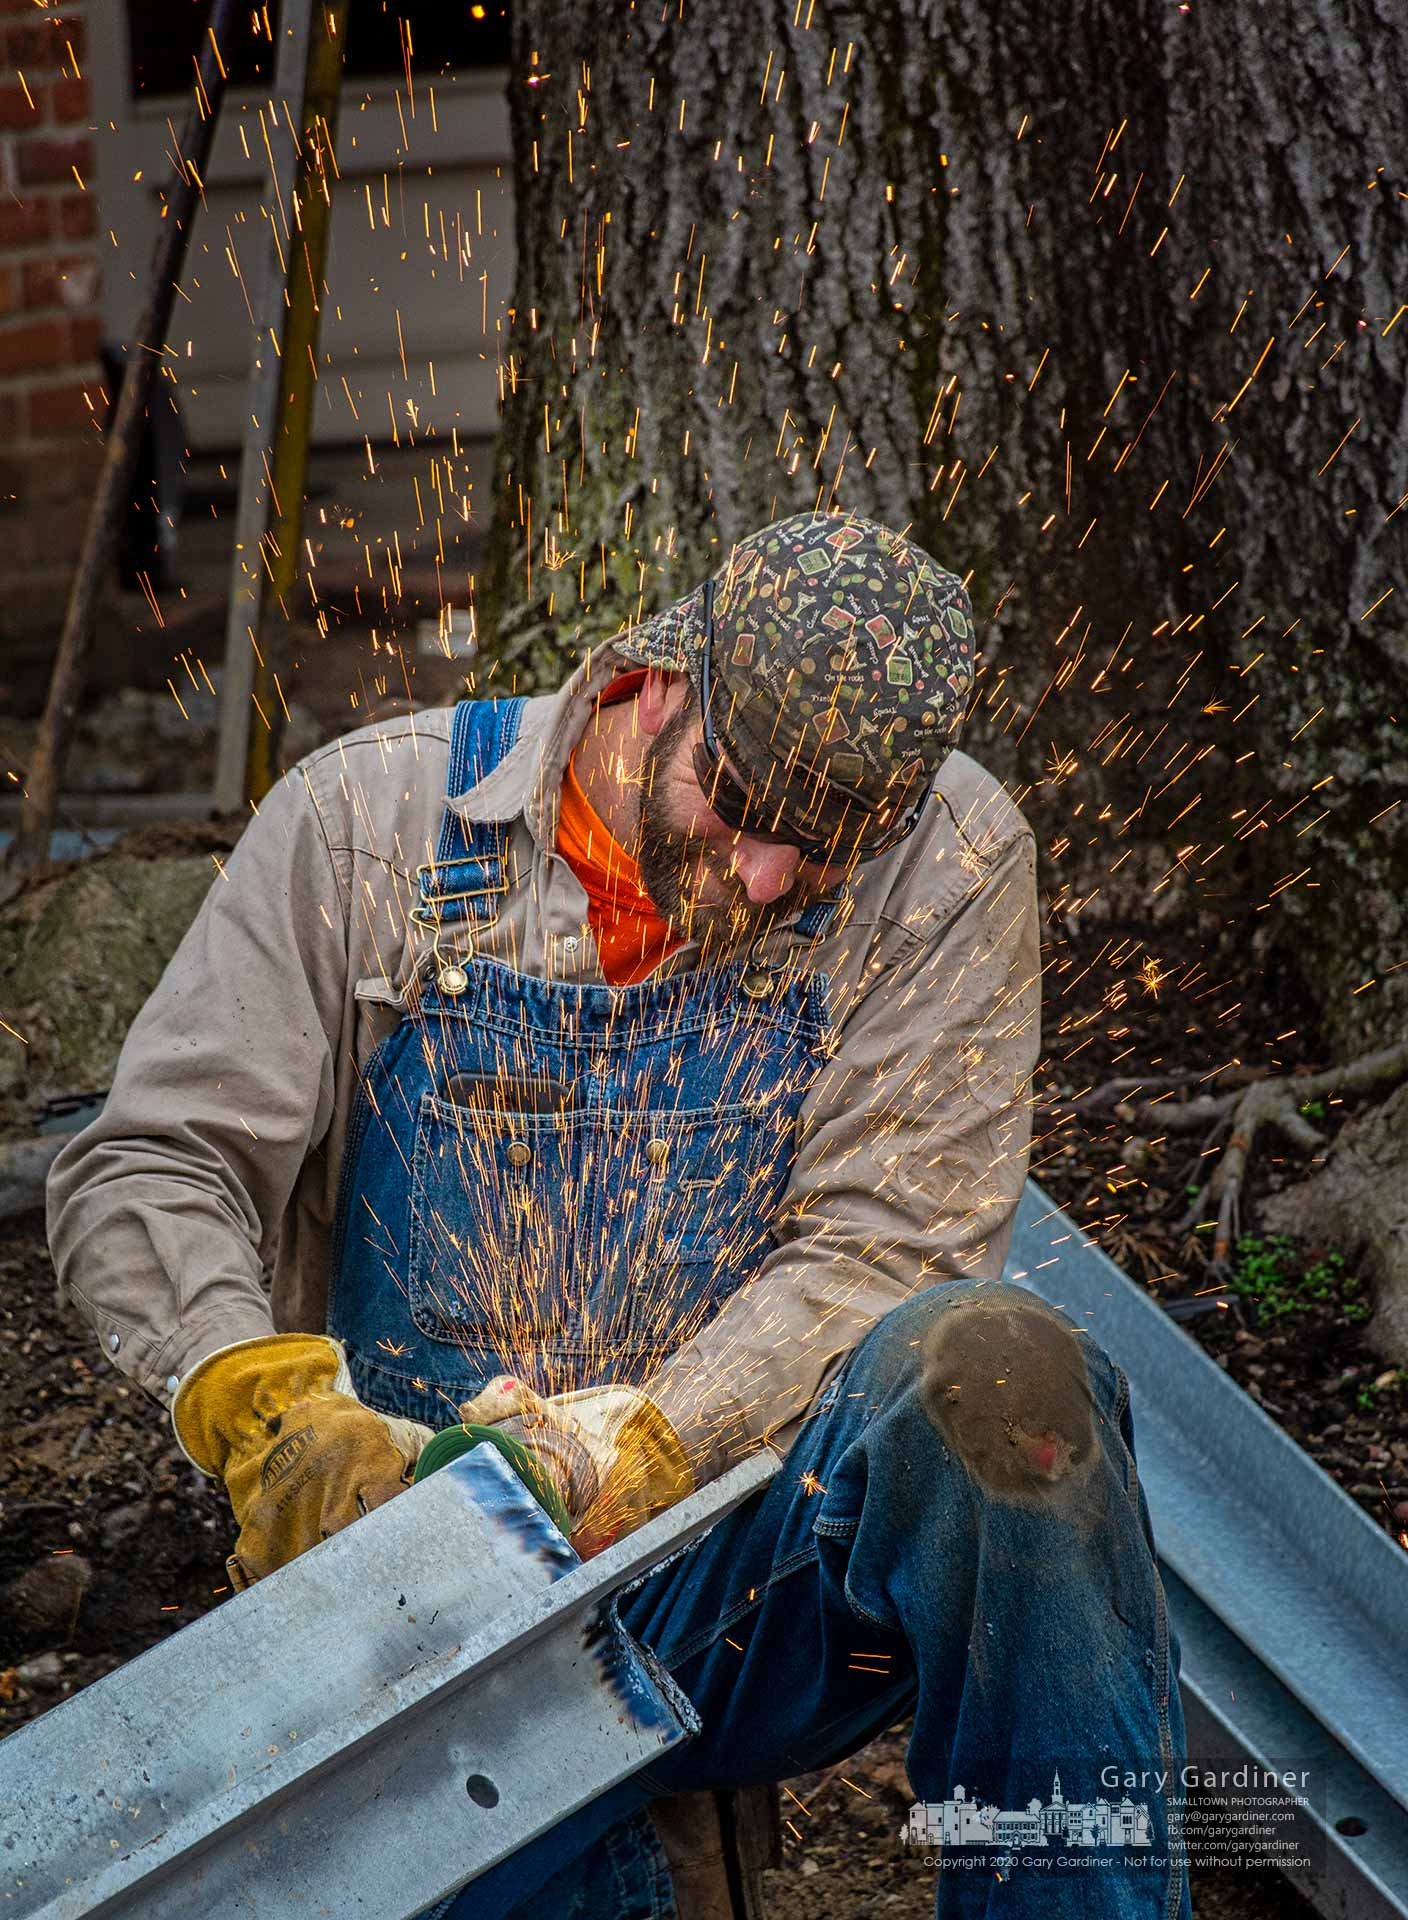 Sparks fly from a grinding wheel smoothing a steel beam surface before being welded into the supports for a platform around the oak tree in the brick walk at Java Central. My Final Photo for March 24, 2020.